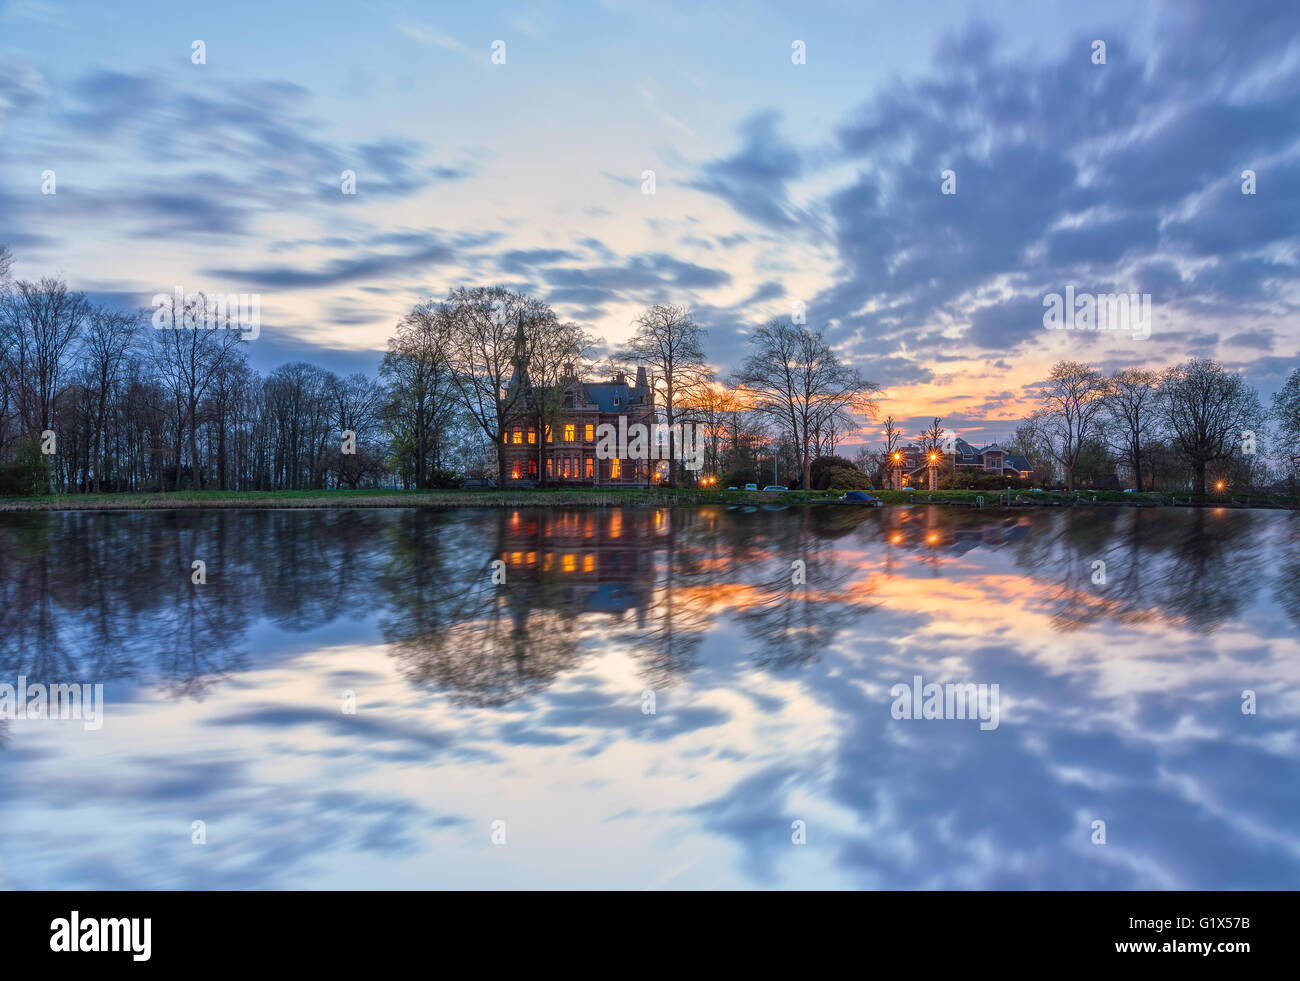 Cloudscape photo from a beautiful villa in Nigtevecht along the river Vecht in The Netherlands Stock Photo